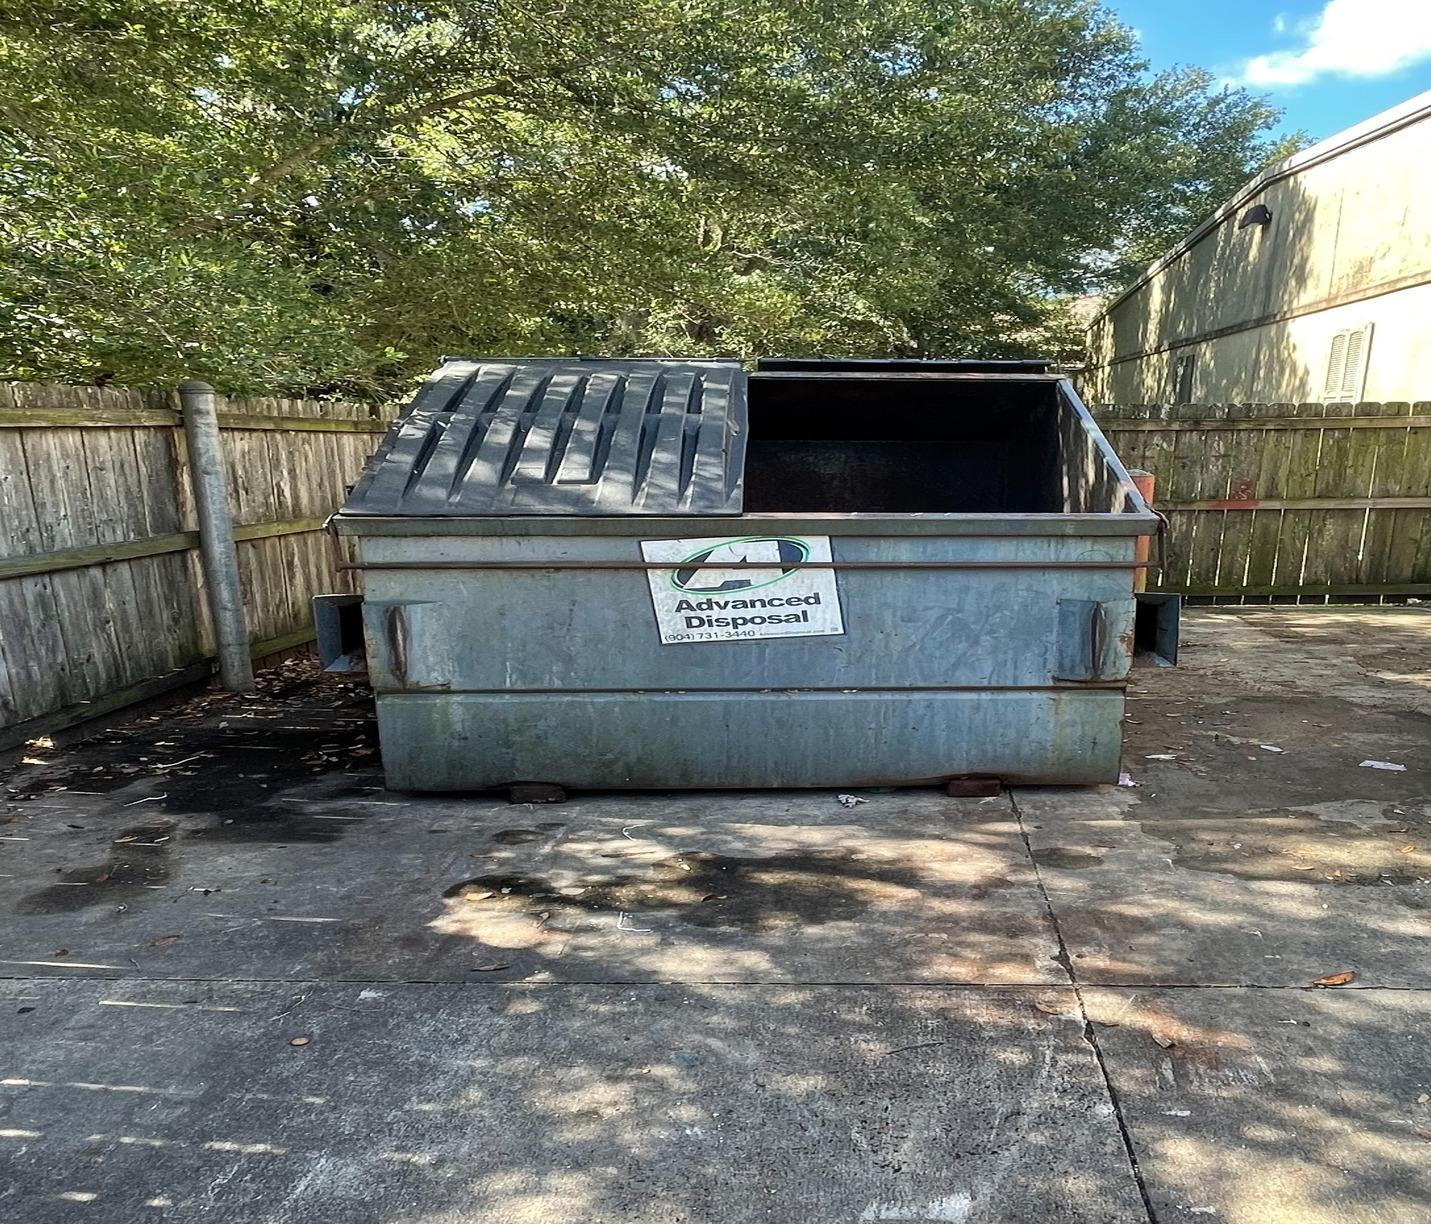 Jacksonville Florida, Commercial dumpster clean out - After Photo